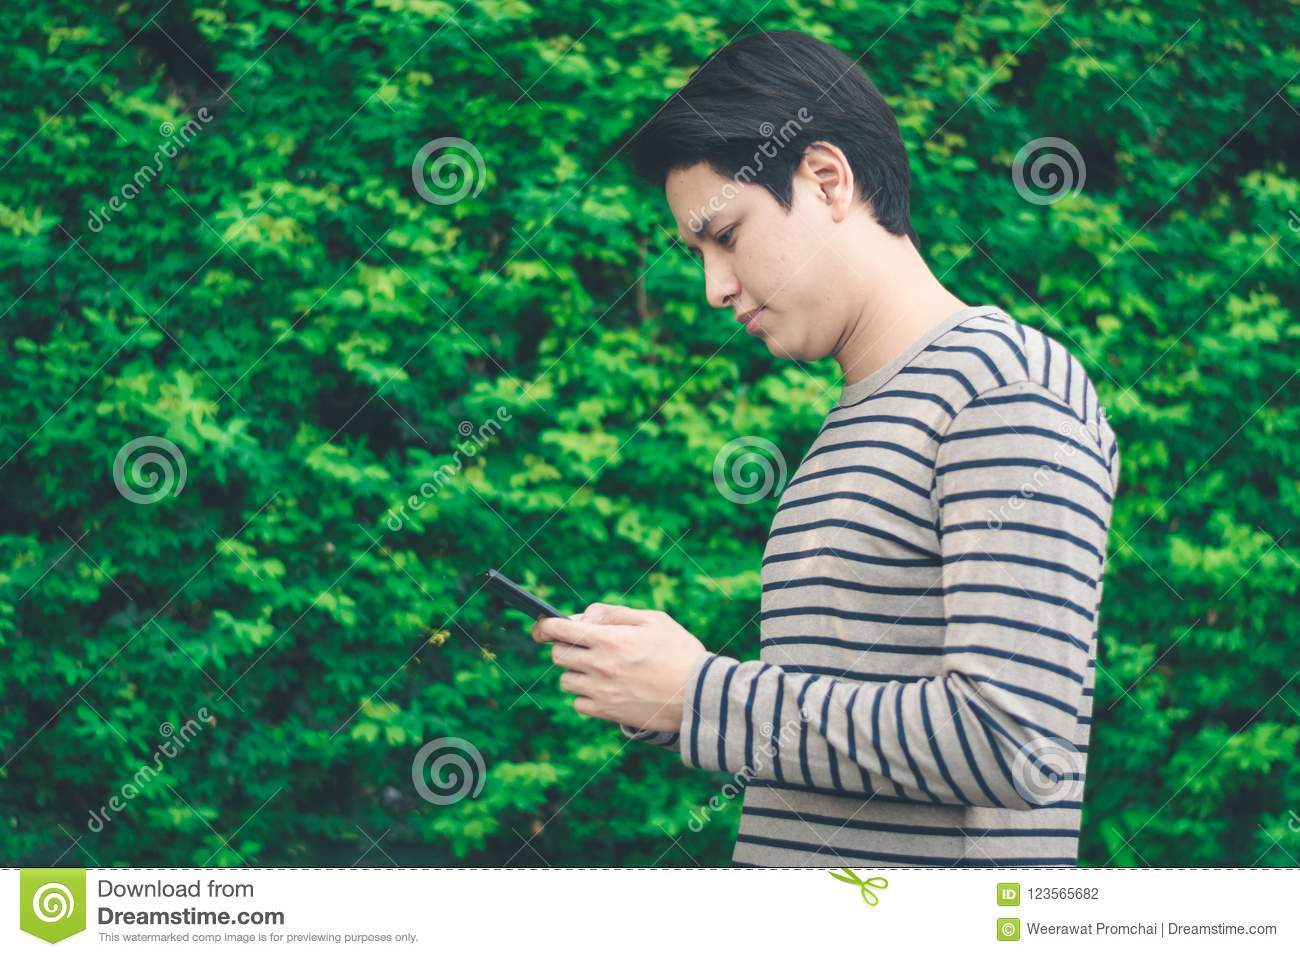 Asian man standing and using smartphone